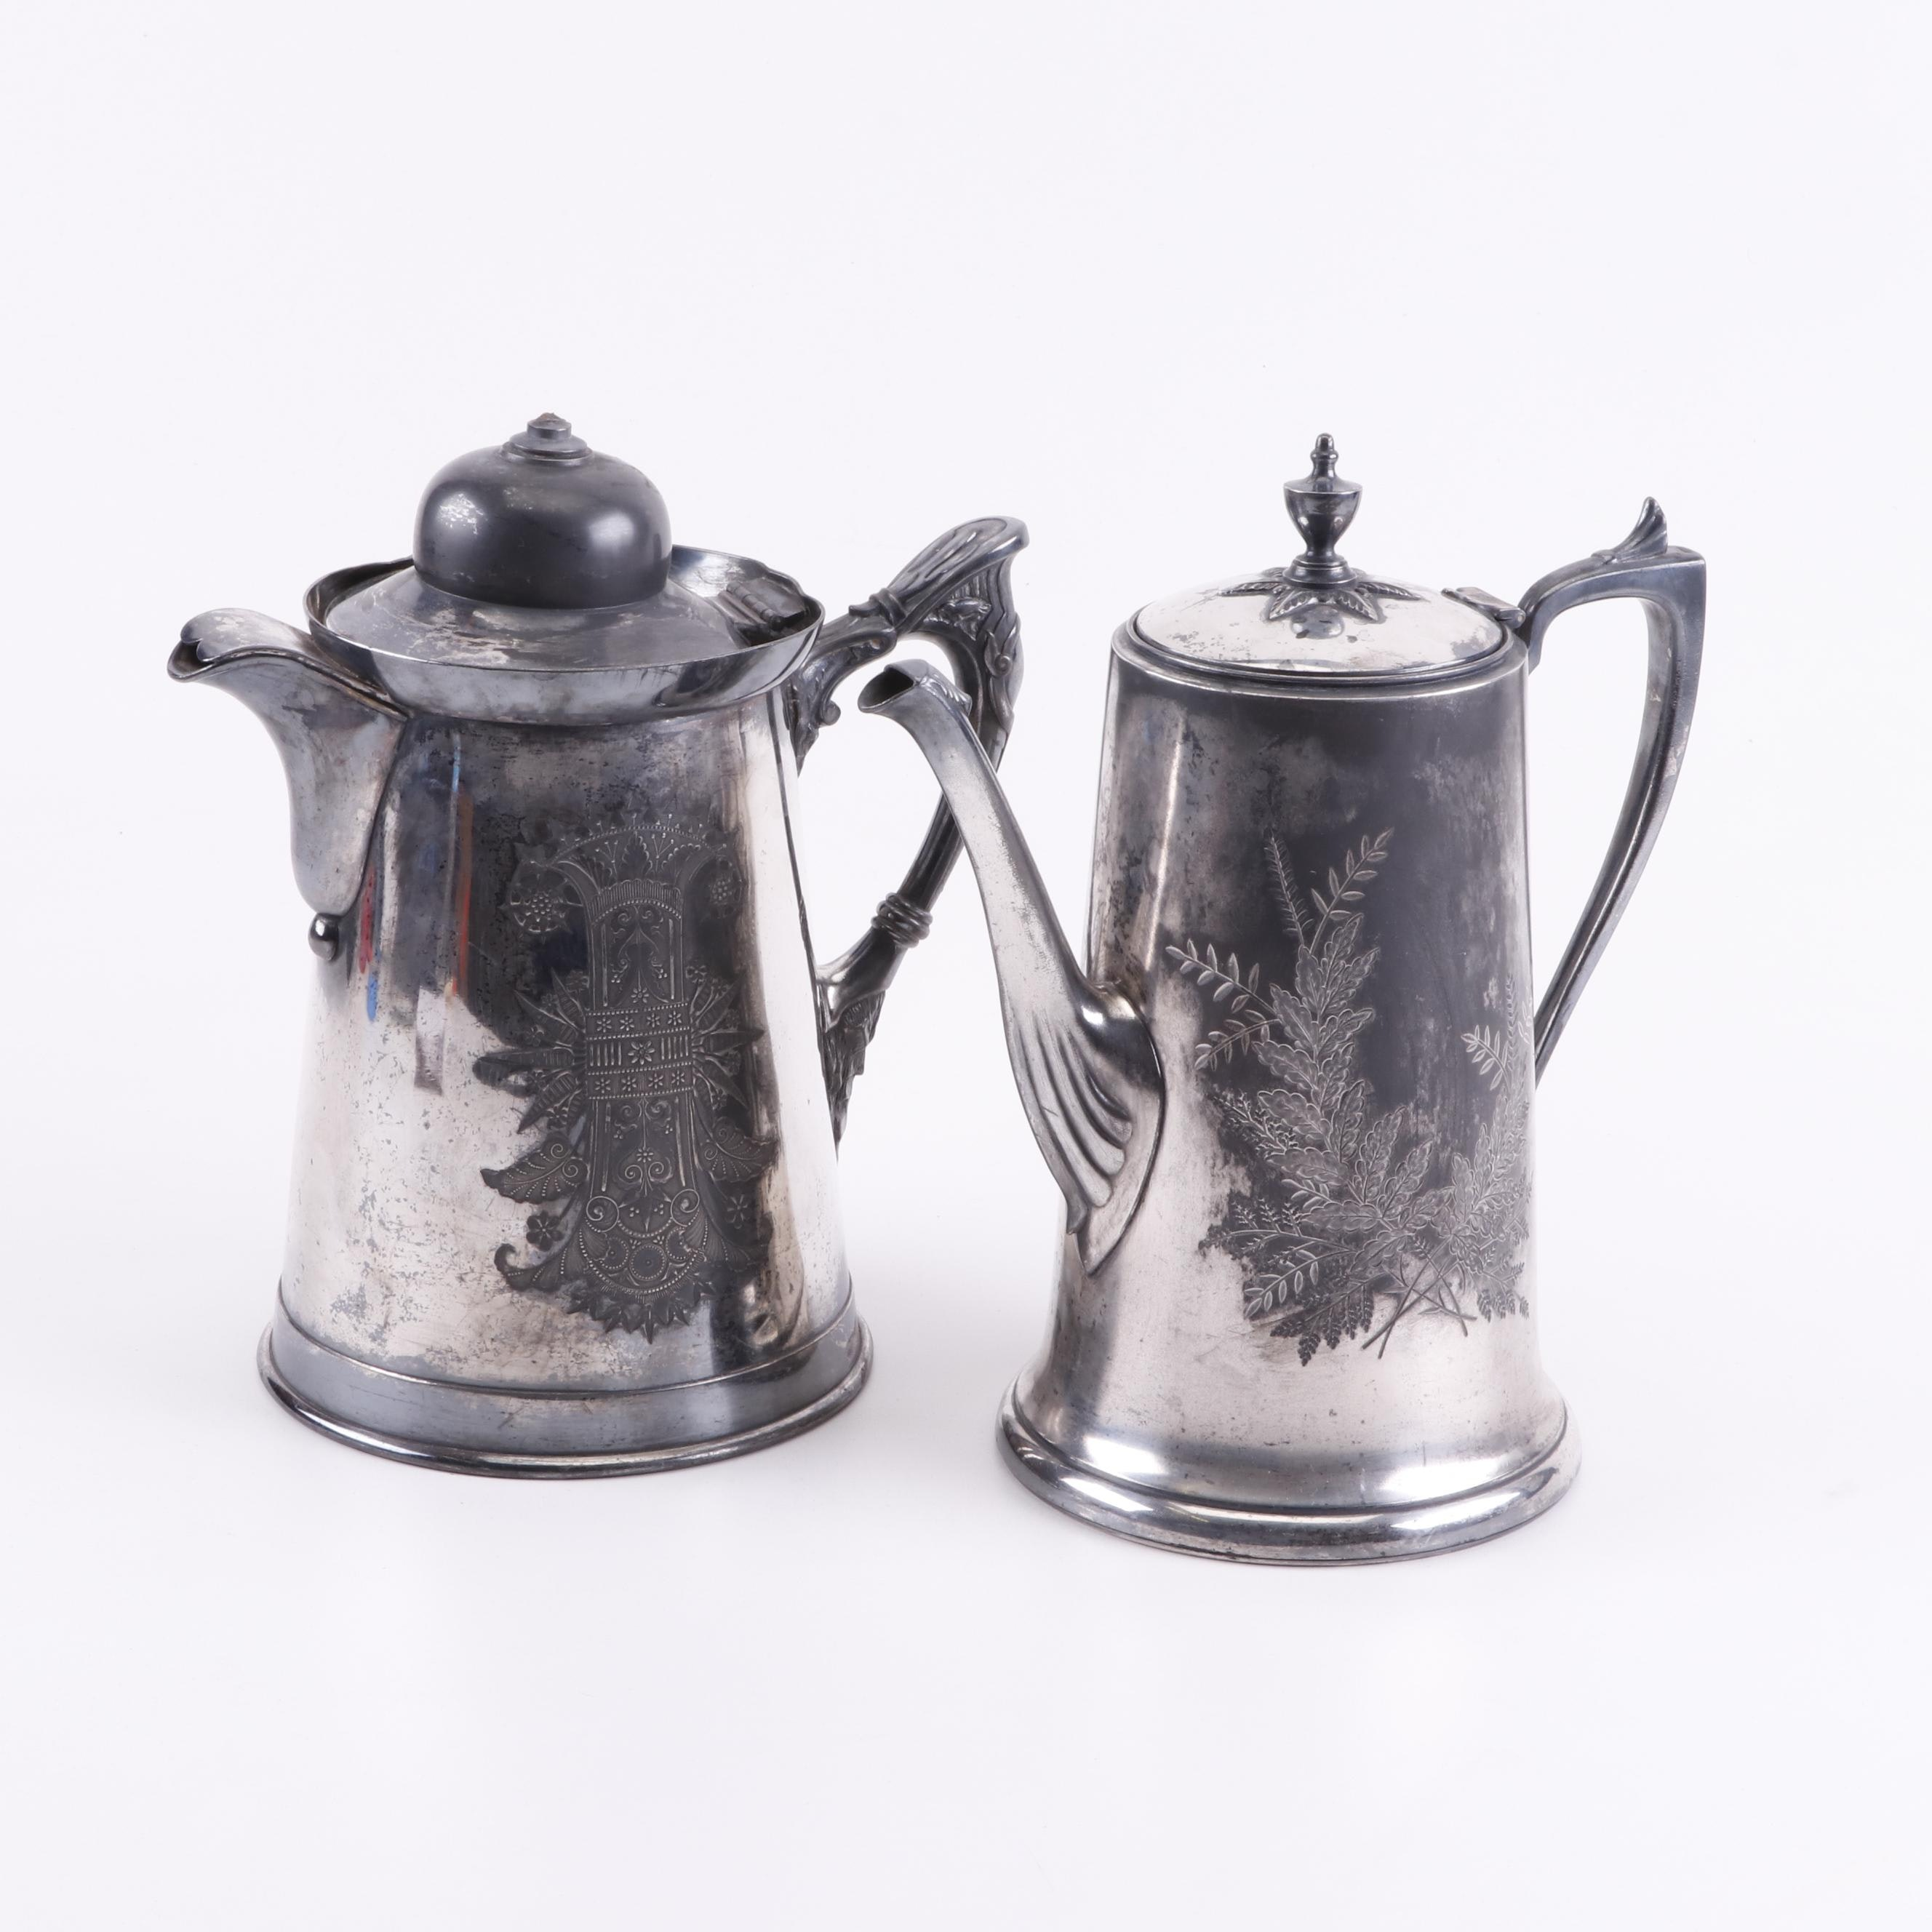 Simpson, Hall, Miller & Co. Silver Plate Coffee Pots, Late 19th Century